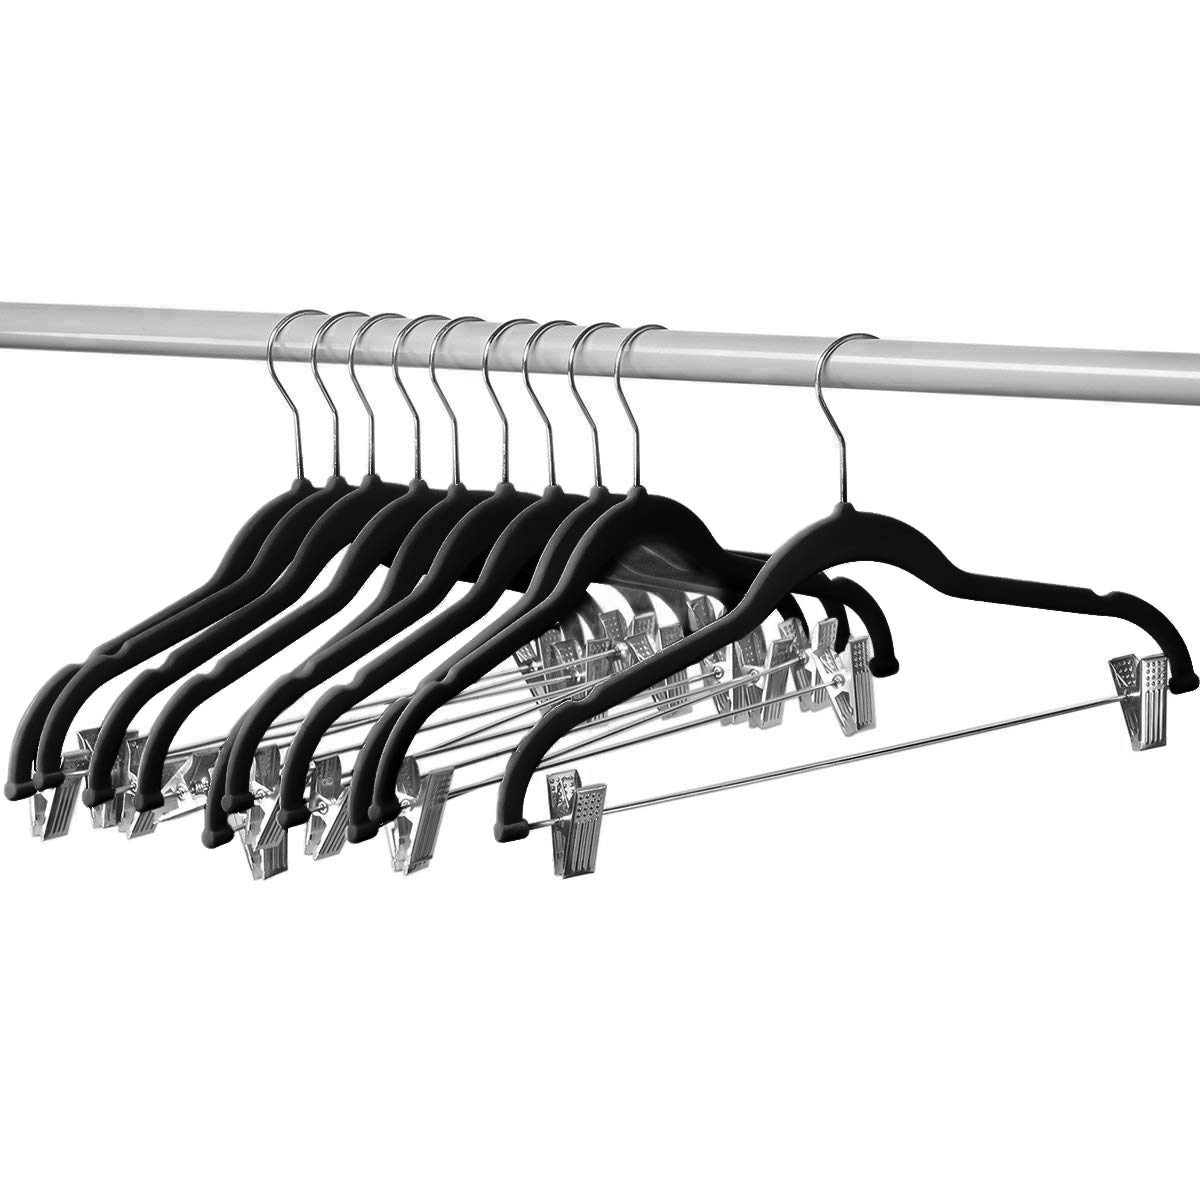 Home-it 50 Clothes Black Hangers Ultra Thin No Slip Hanger with Metal Clips …